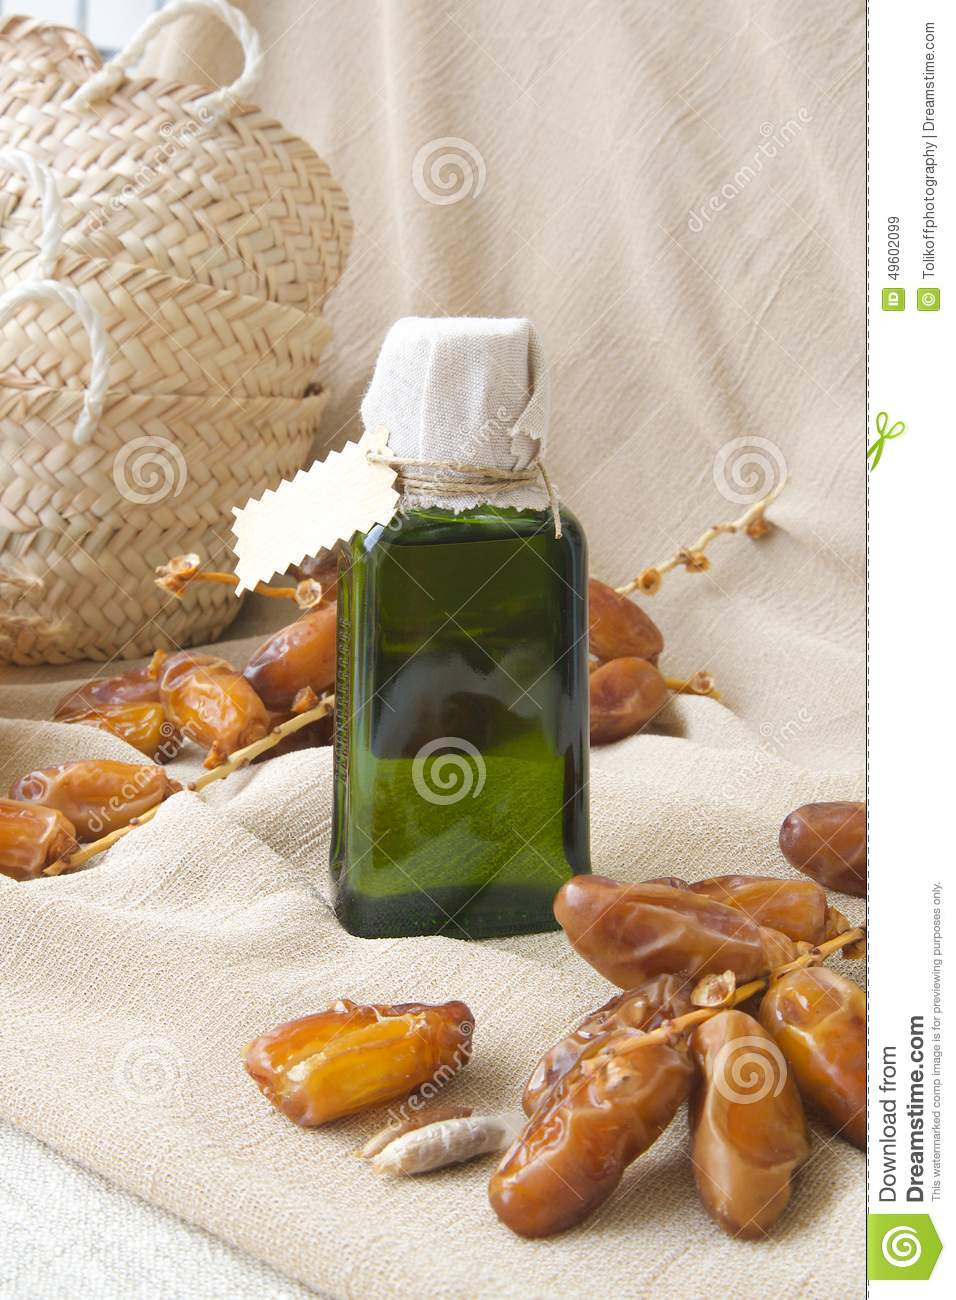 how to make date seed oil